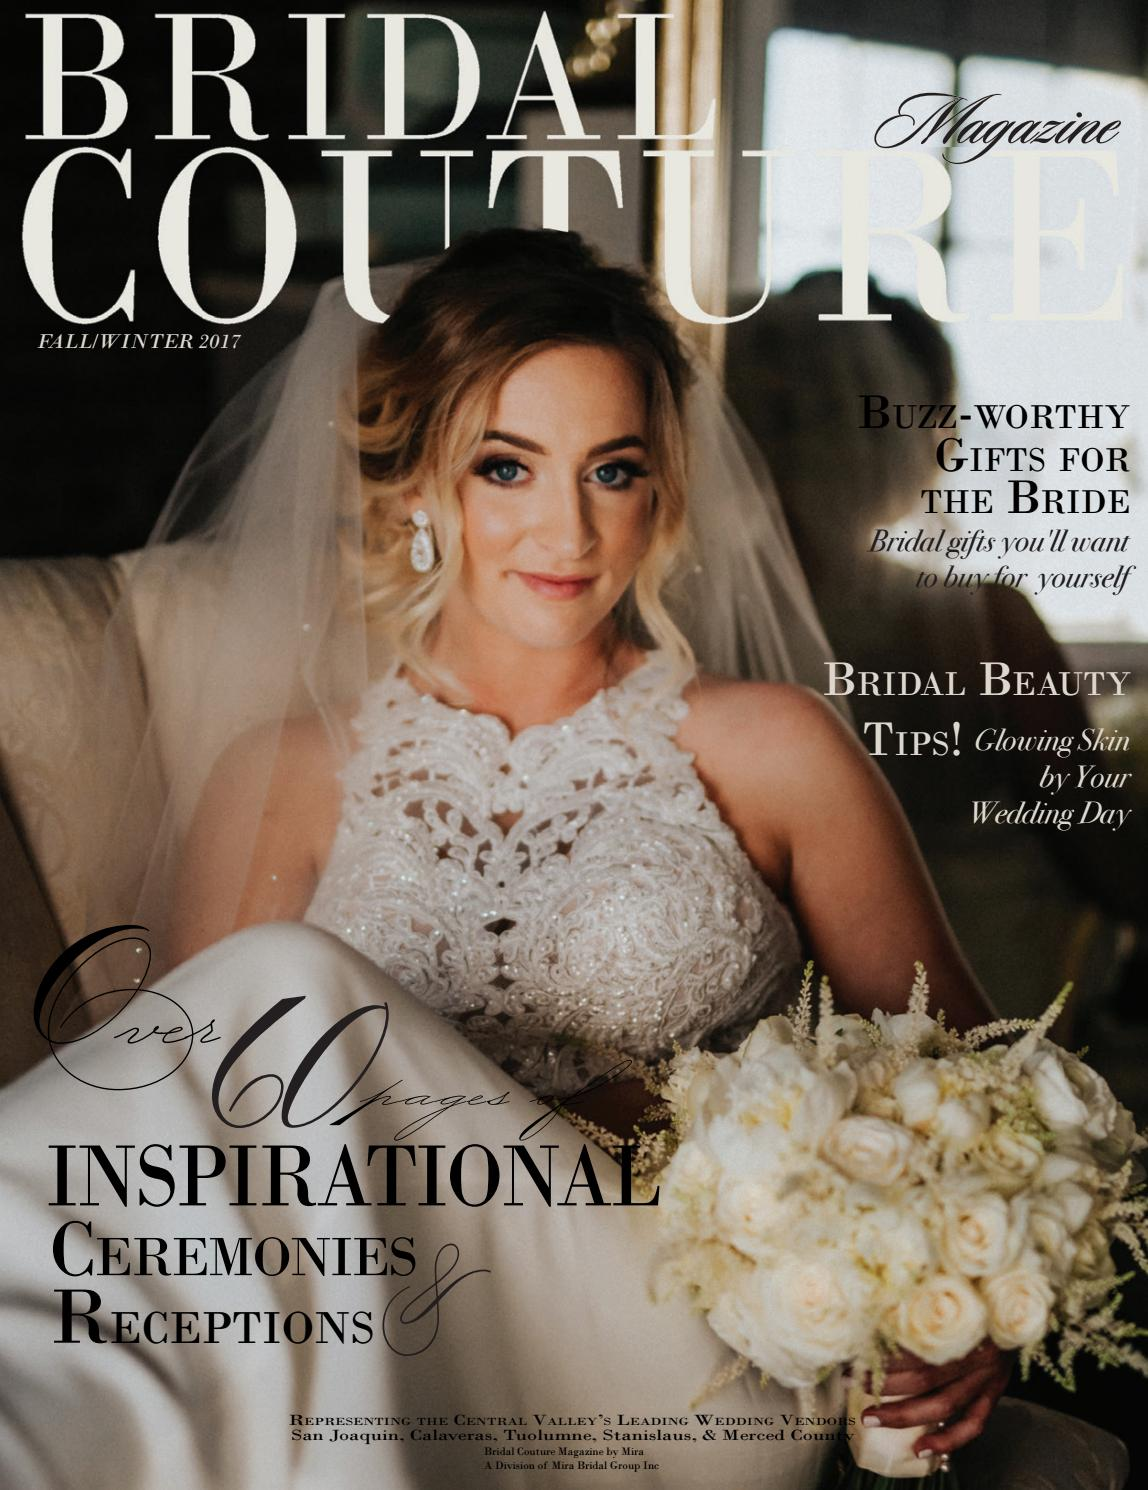 Bridal couture magazine fall winter 2017 by bridal couture bridal couture magazine fall winter 2017 by bridal couture magazine issuu solutioingenieria Image collections